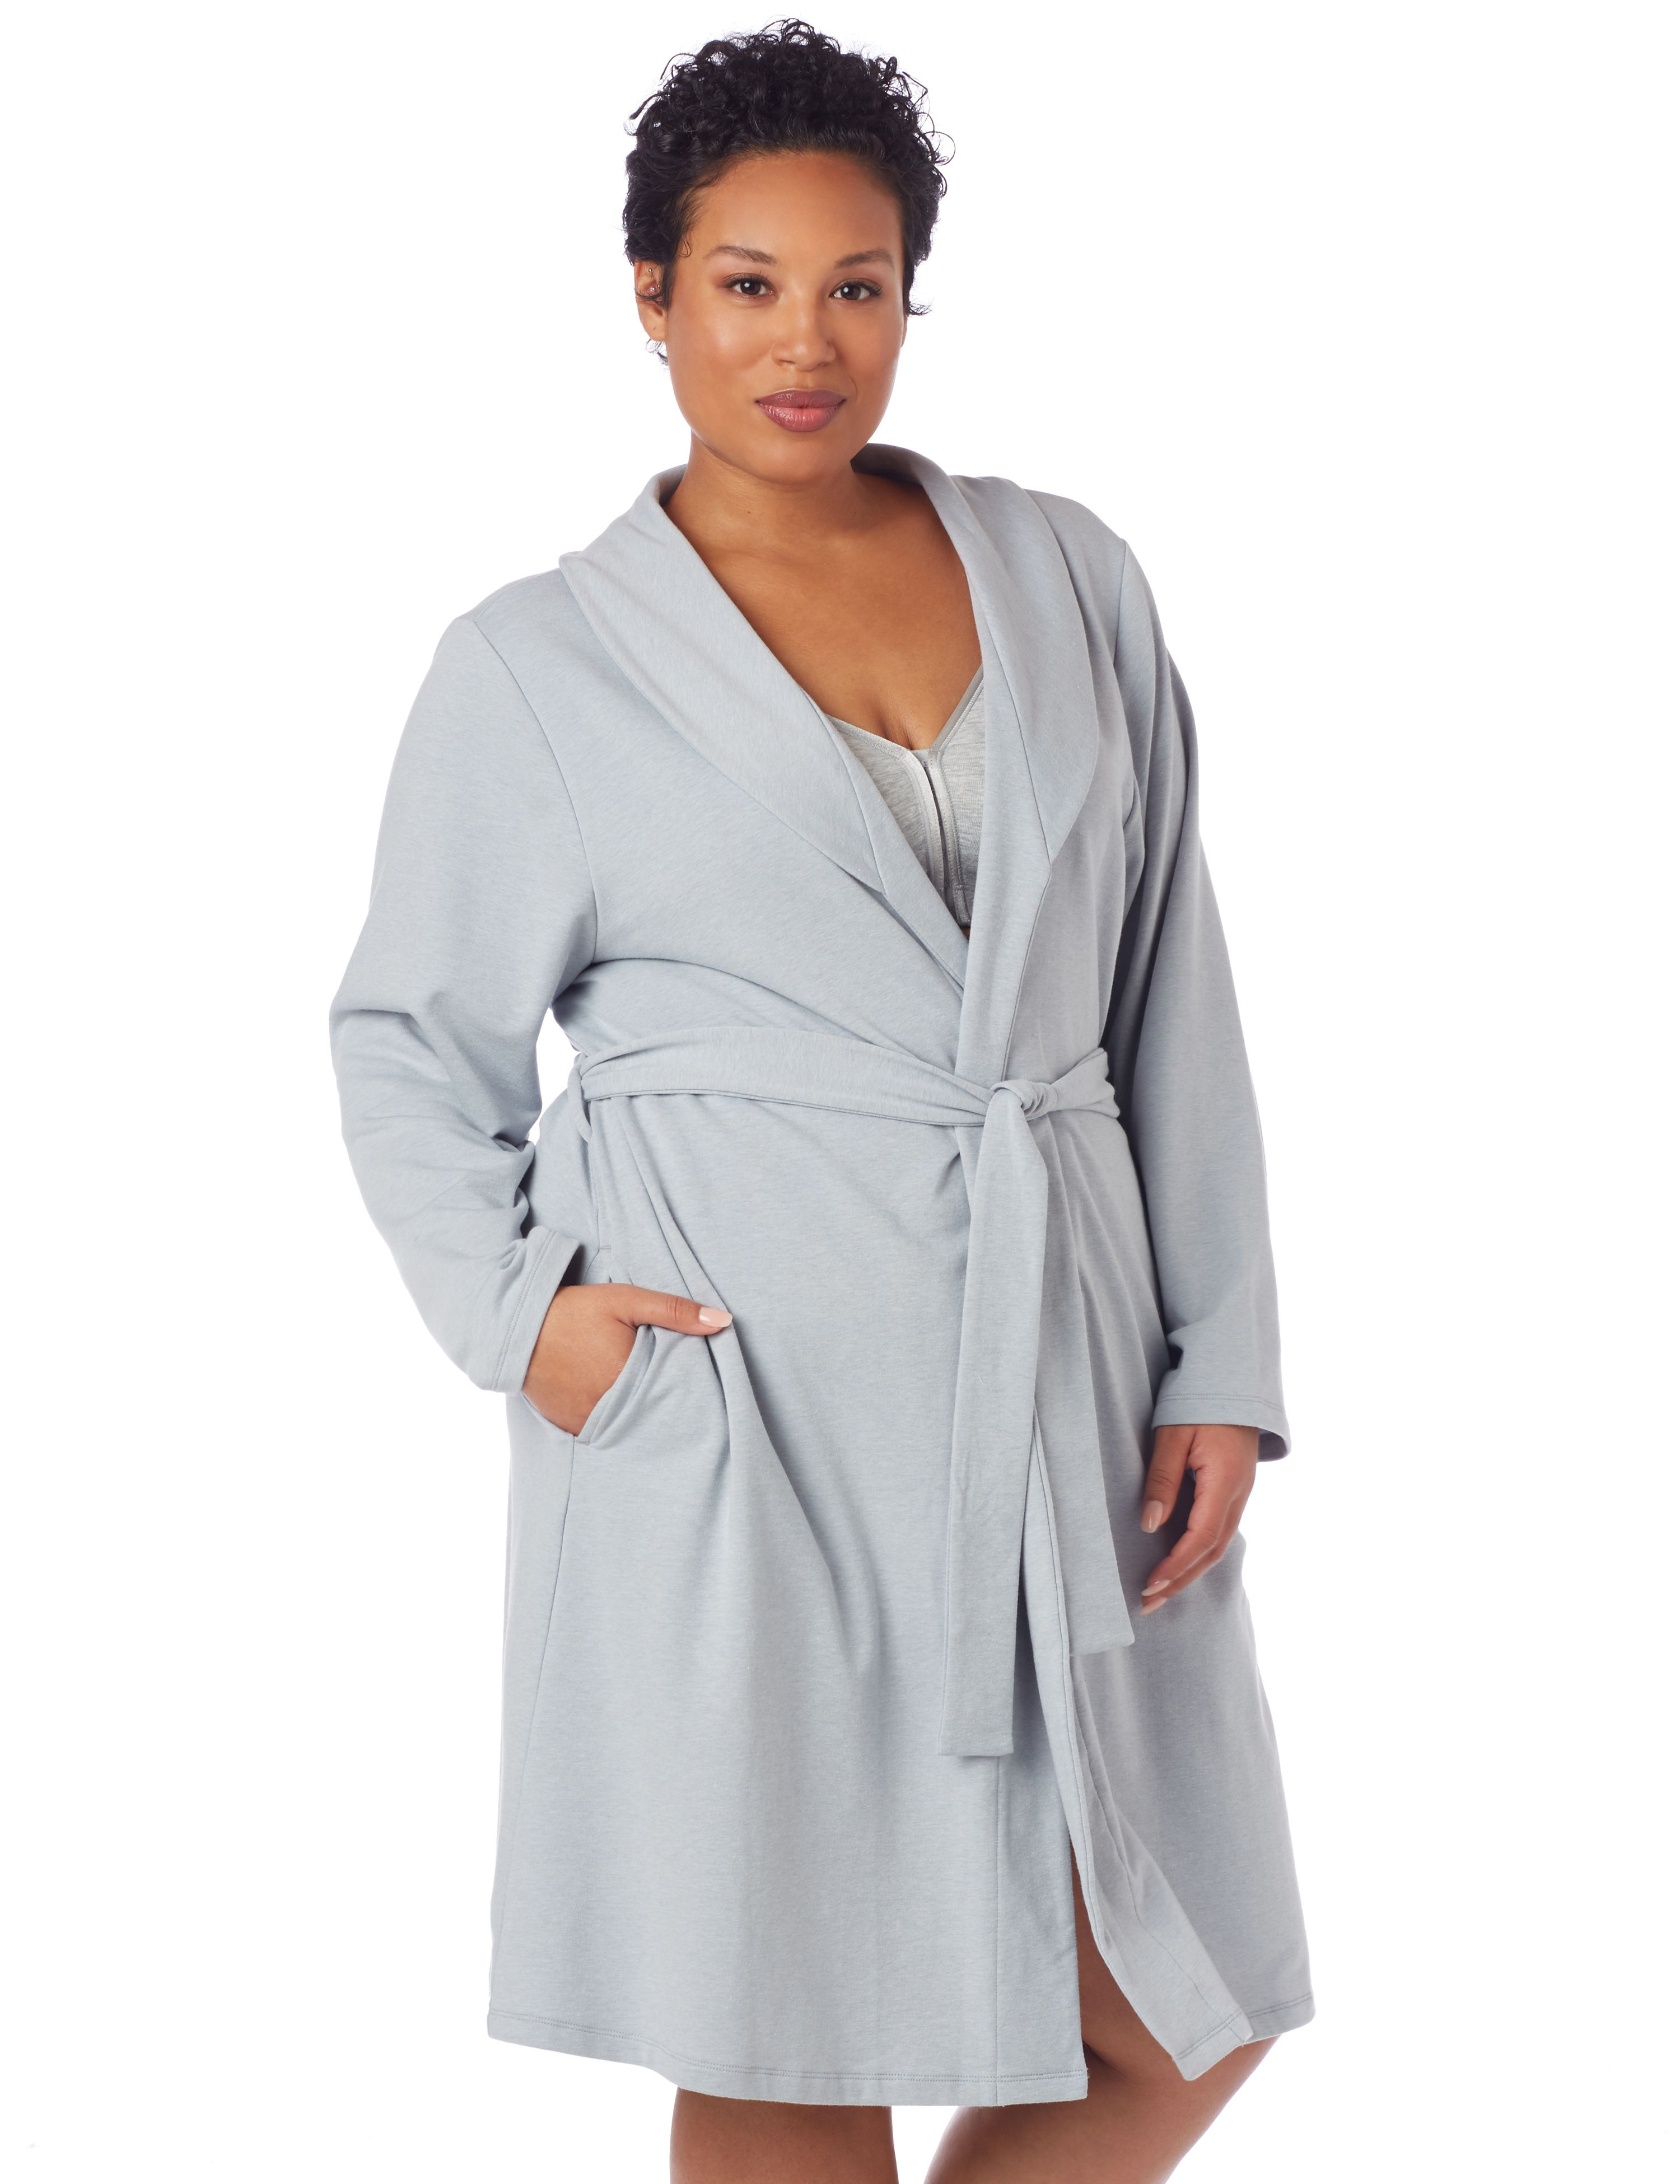 French Terry Robe Done MP-300095830